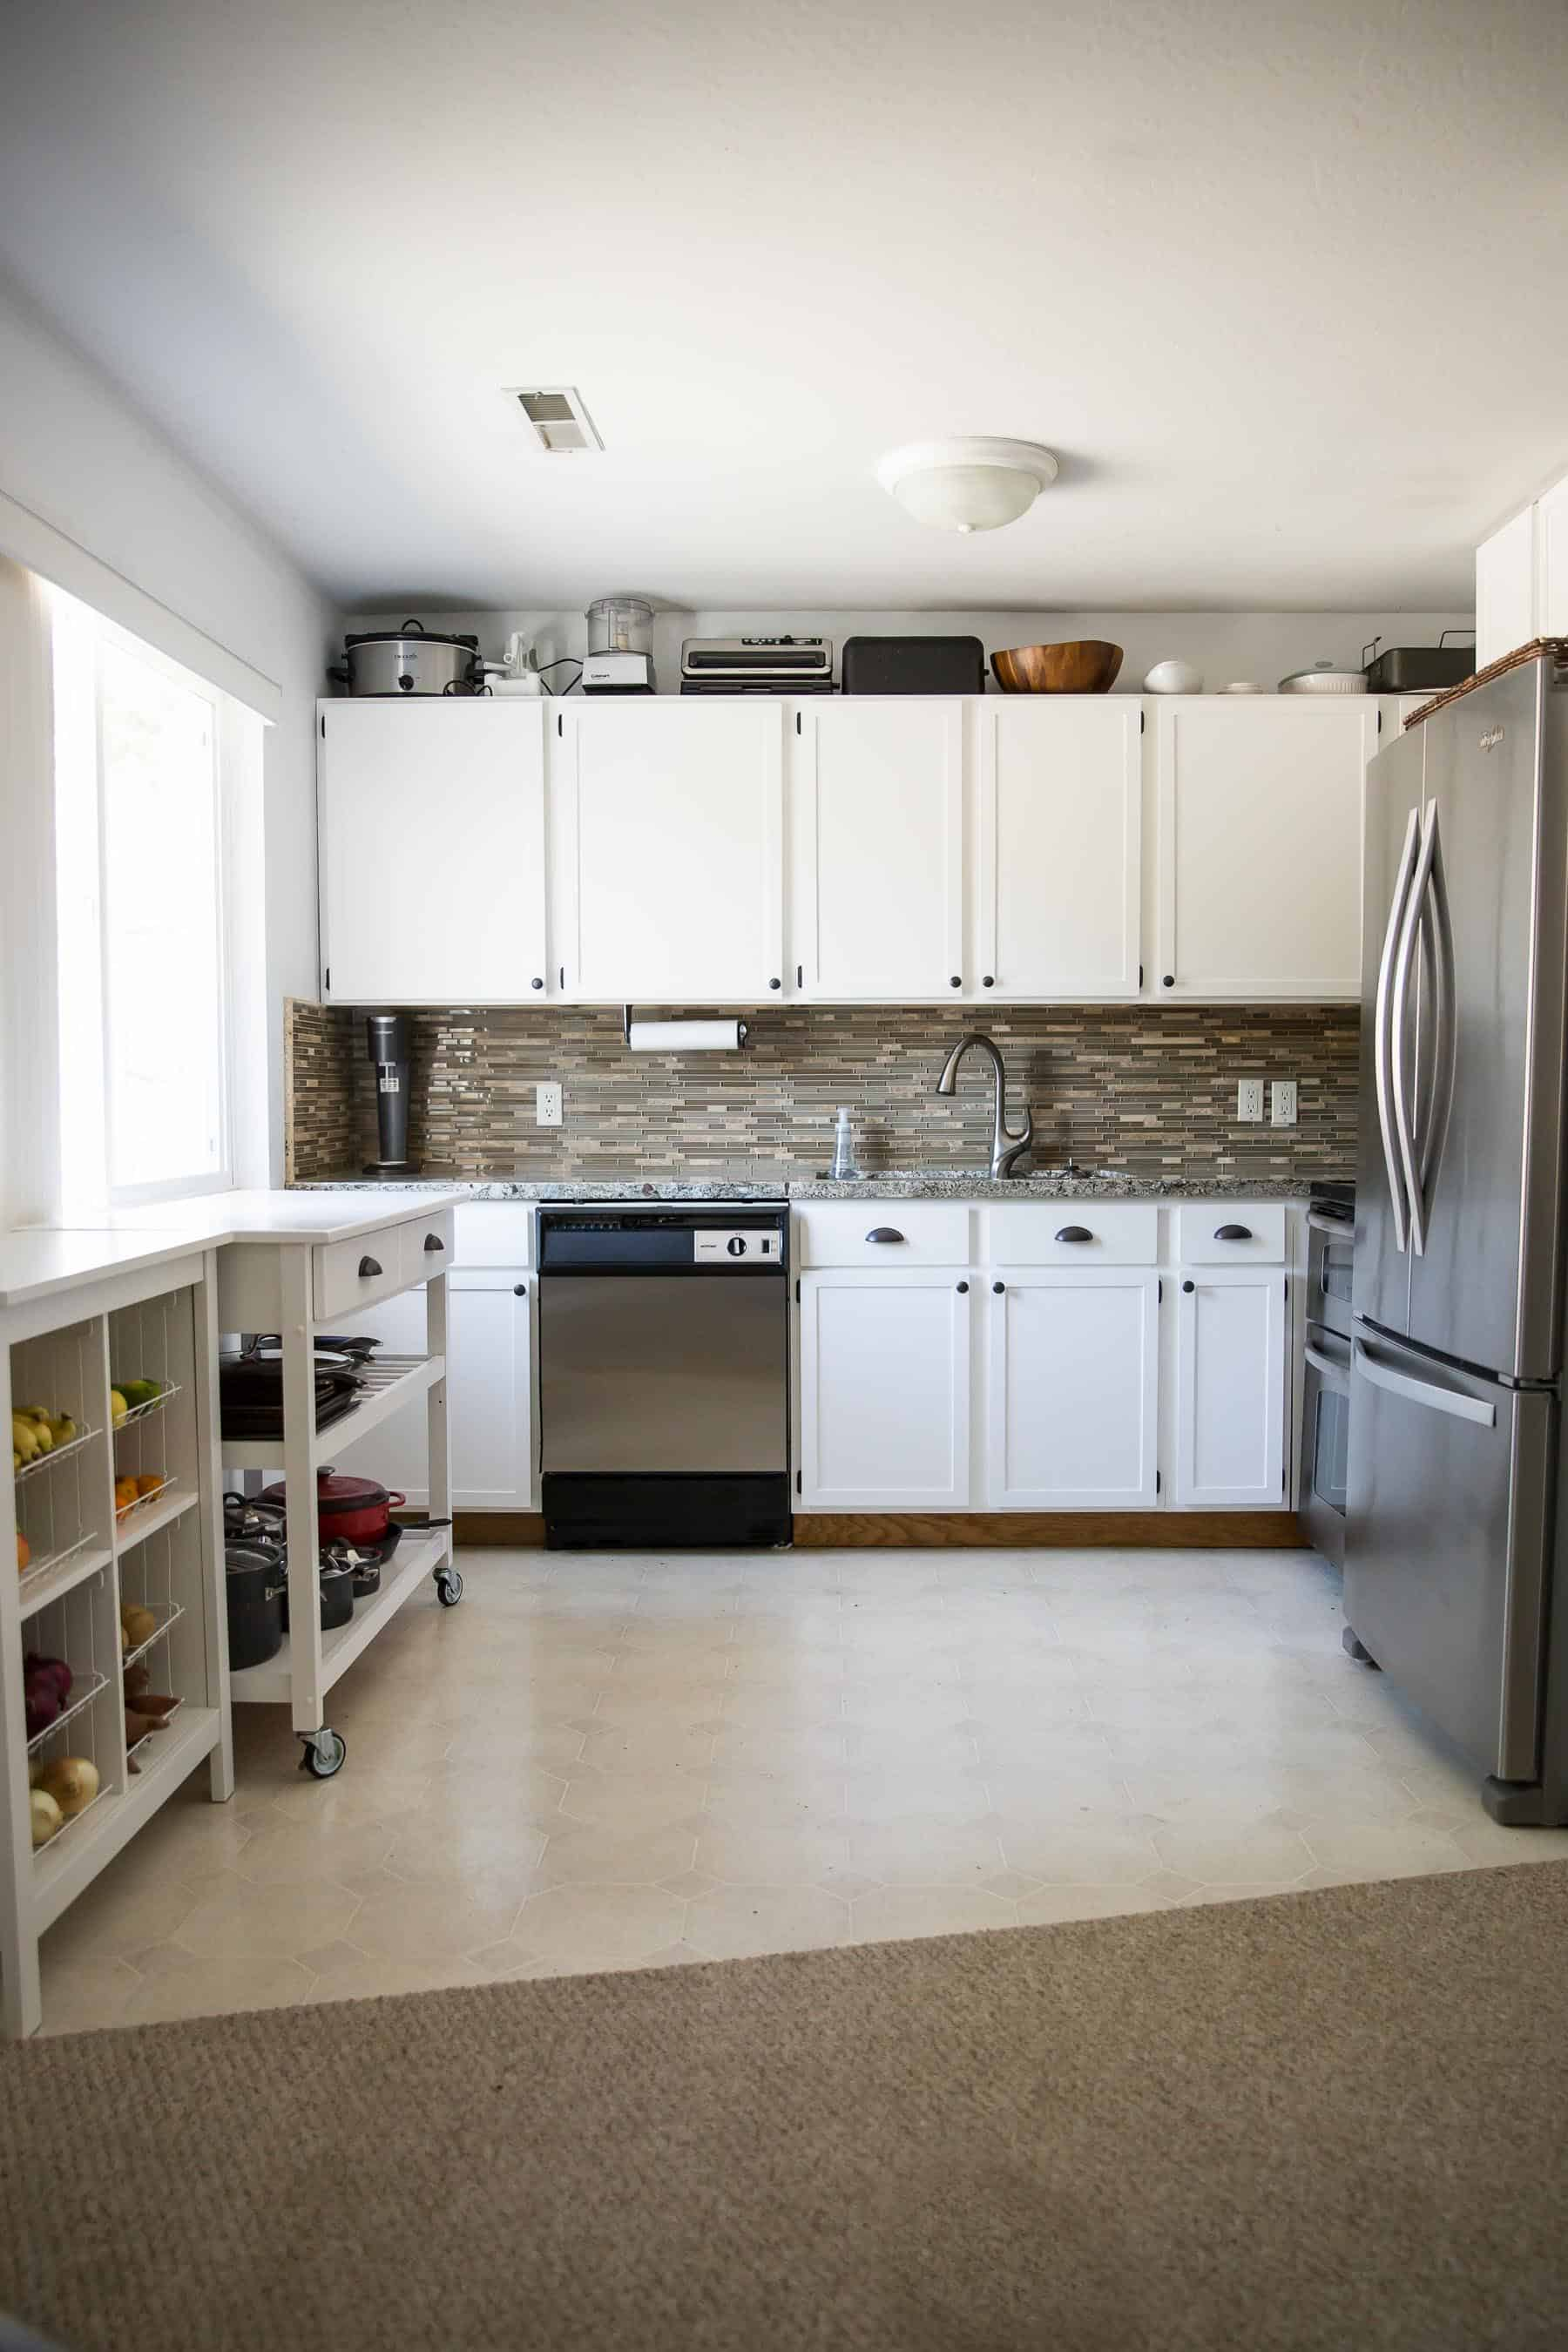 Our 281 Diy Kitchen Remodel Painting Oak Cabinets White Adding Wood Trim To